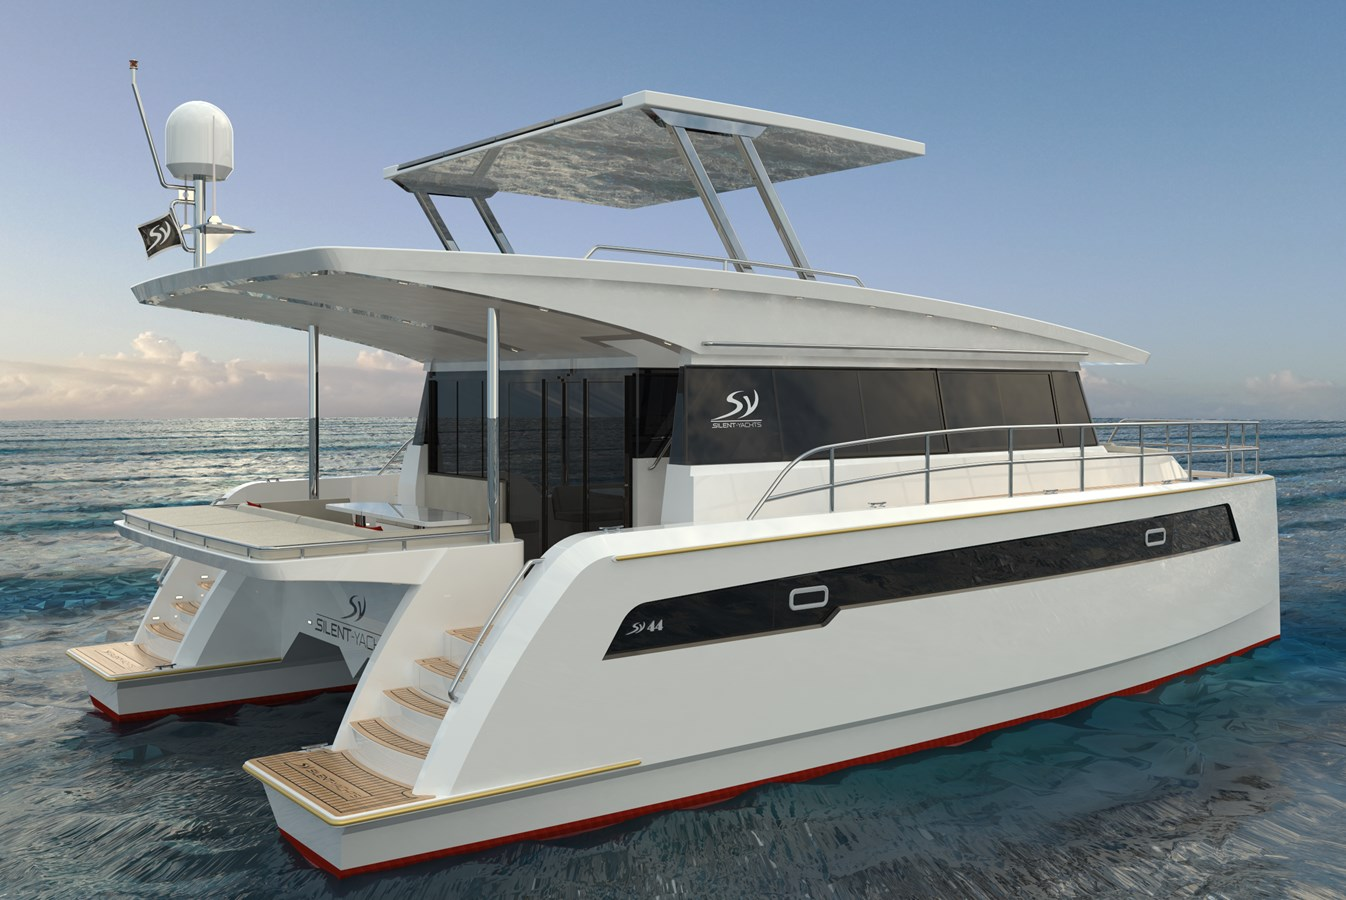 Electric Yachts Silent Yachts 44 STB Aft 2020 SILENT YACHTS SILENT 44 Catamaran 2771197